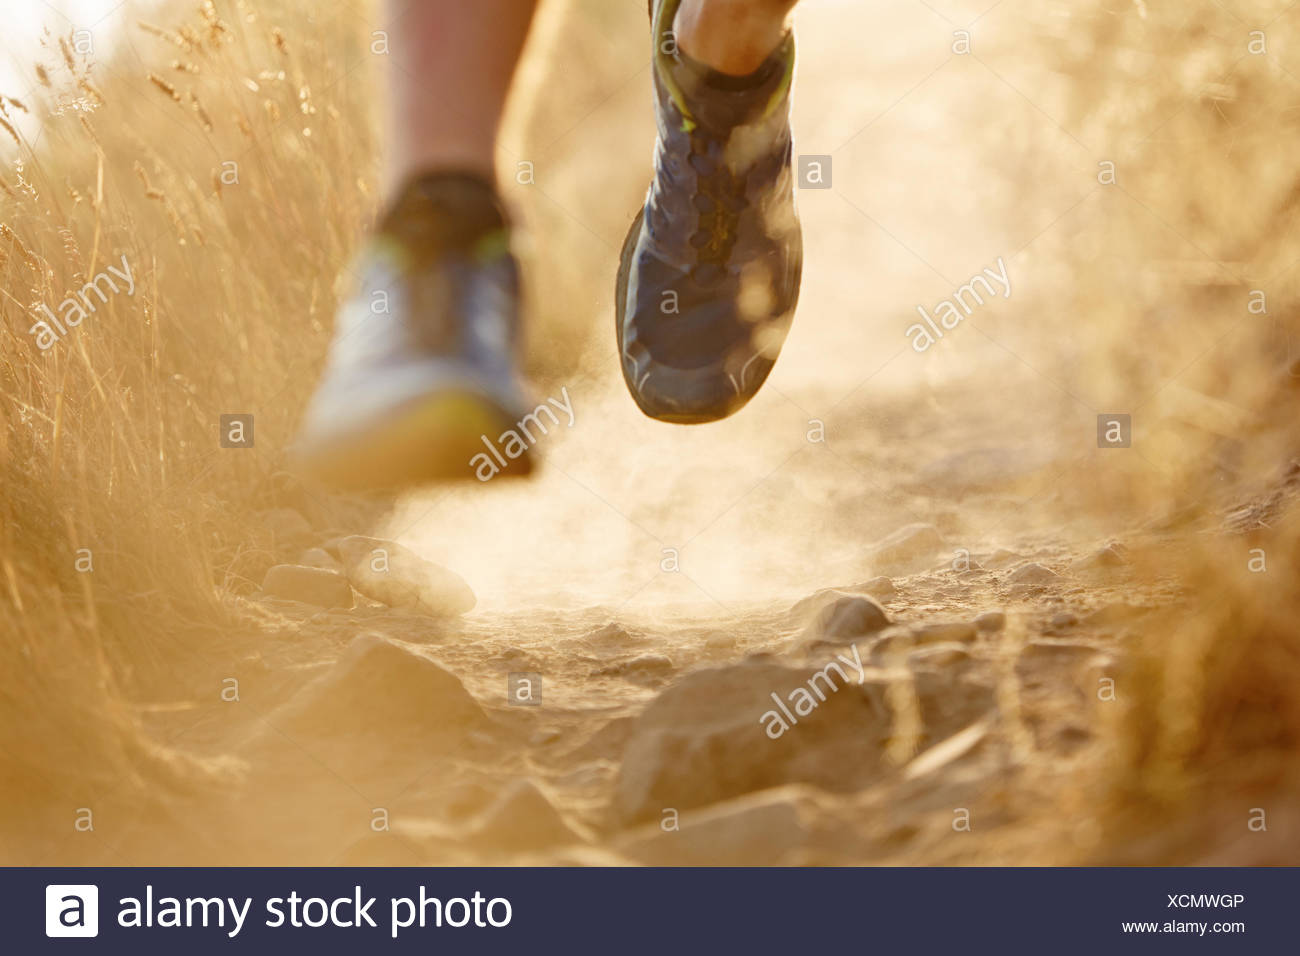 Close up of runner's feet on dirt trail - Stock Image